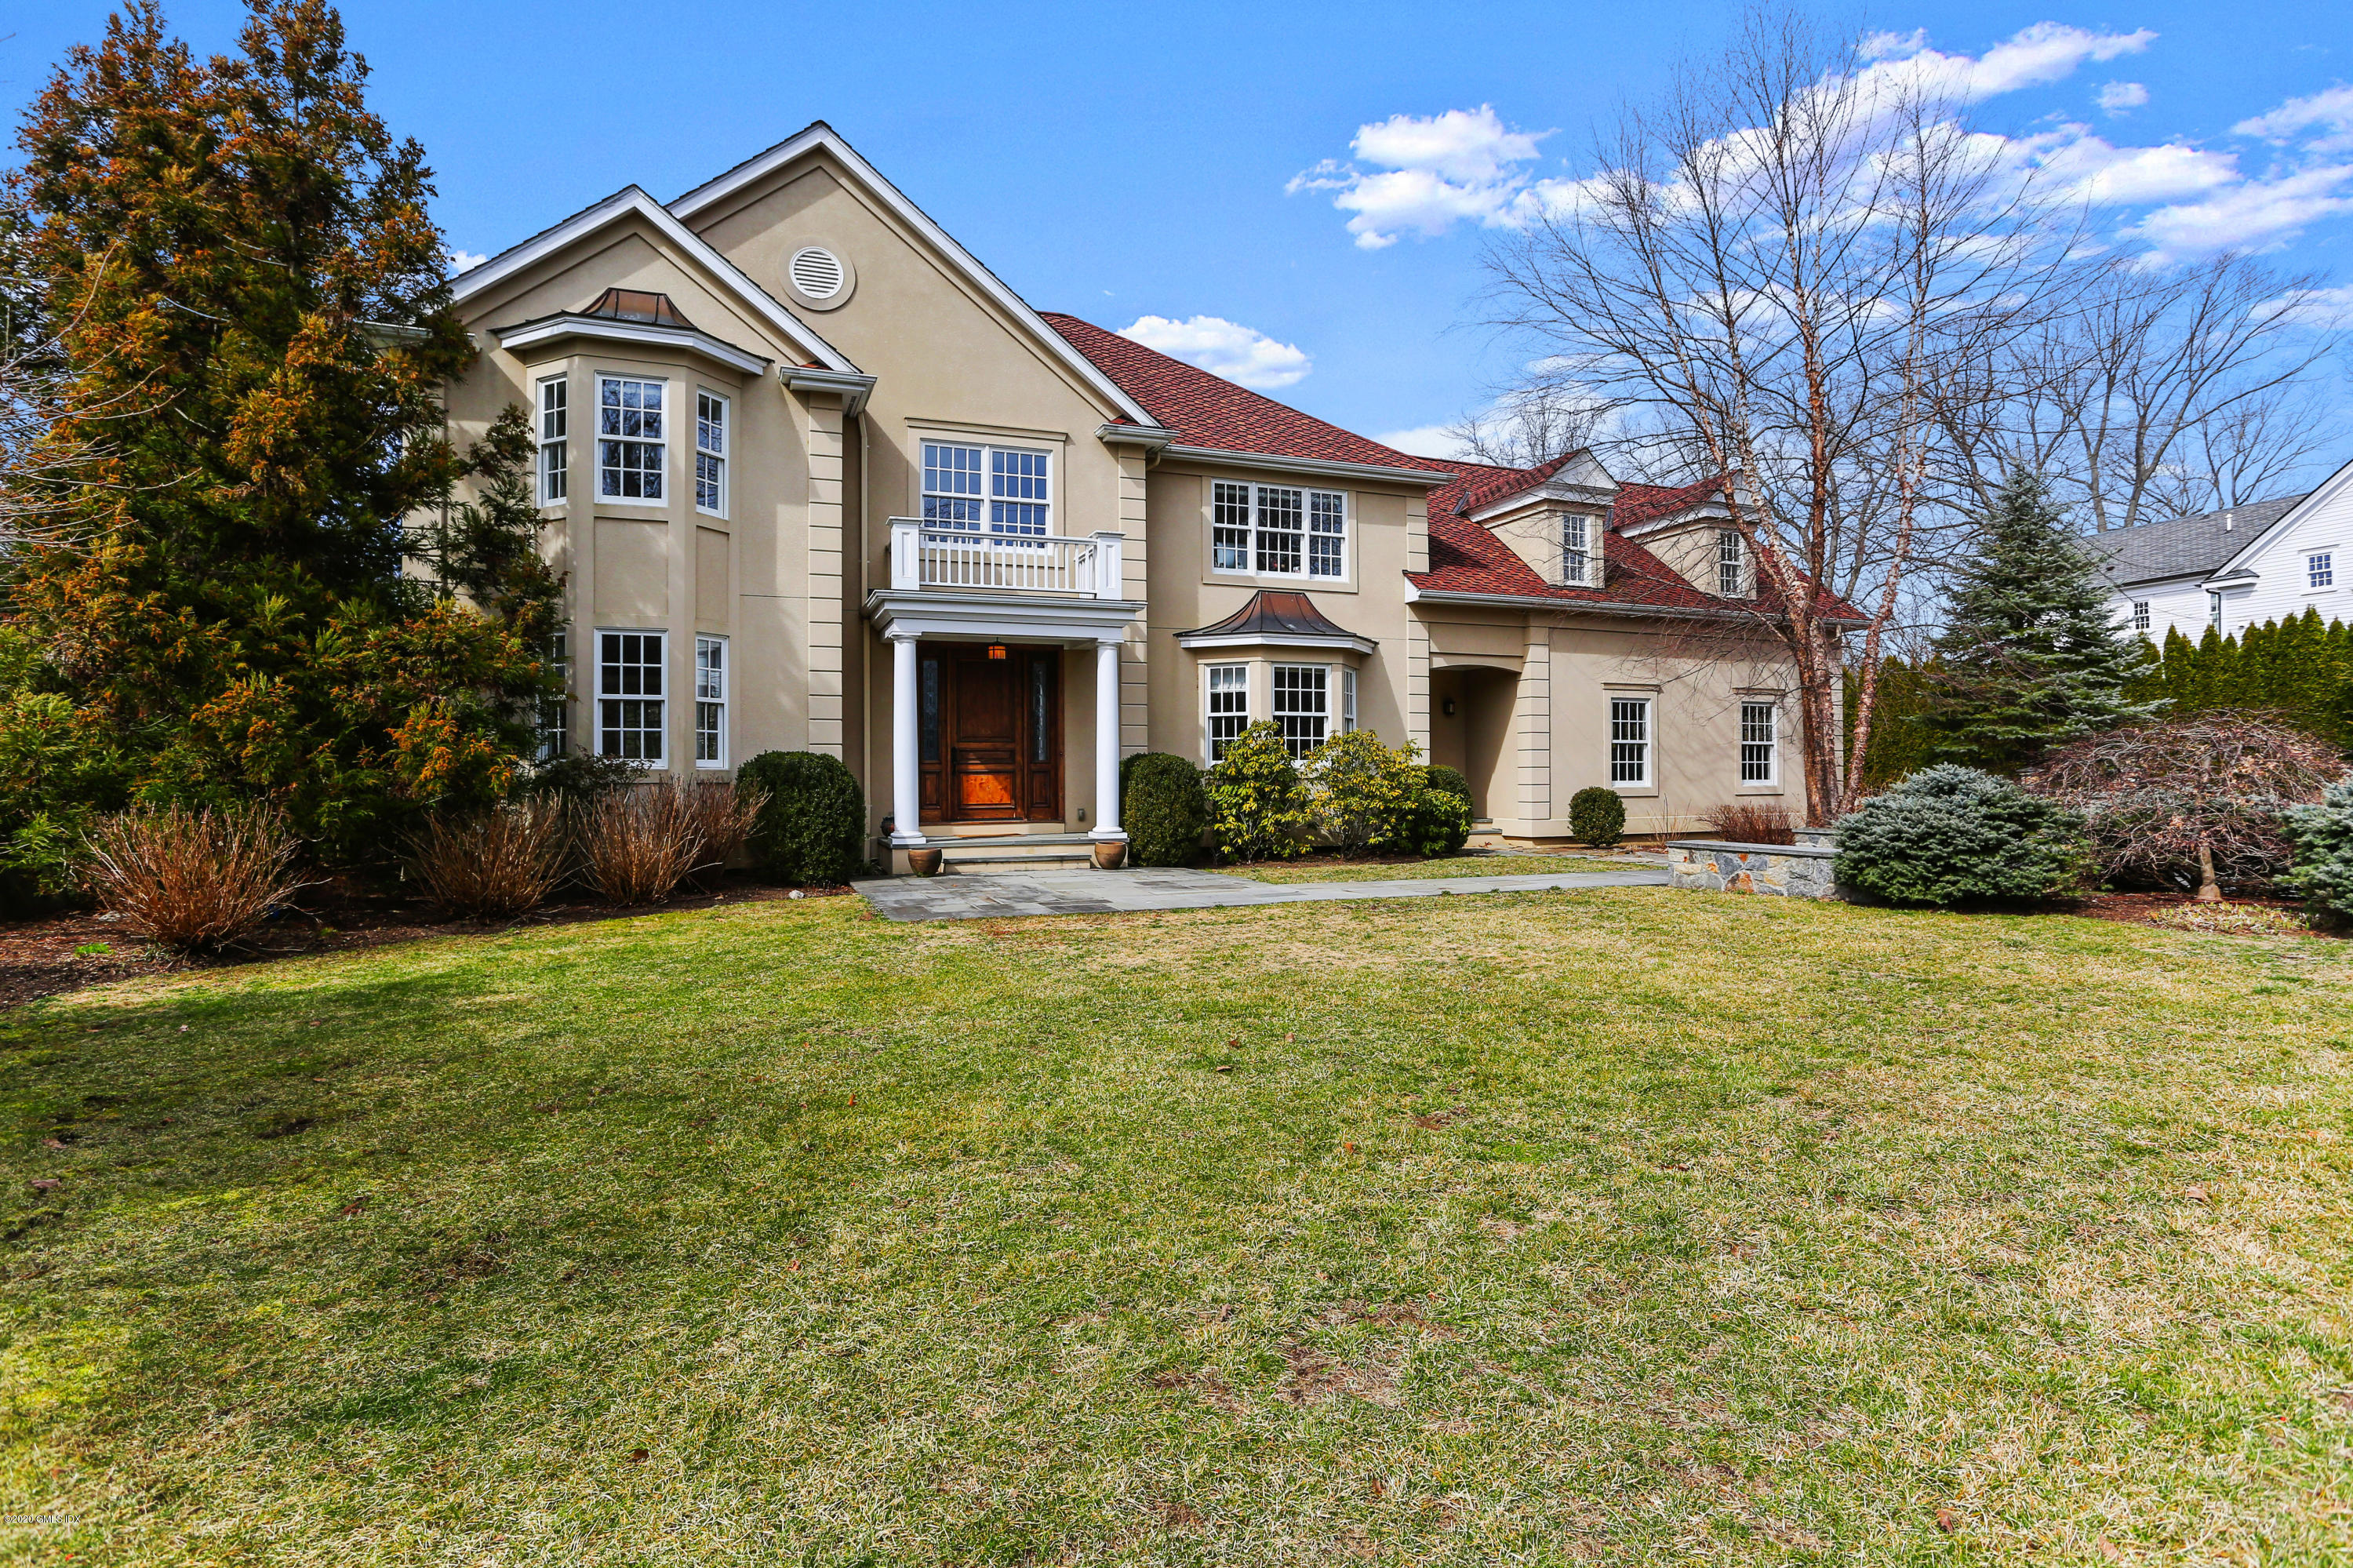 131 Woodside Drive, Greenwich, Connecticut 06830, 4 Bedrooms Bedrooms, ,3 BathroomsBathrooms,Single family,For sale,Woodside,111792